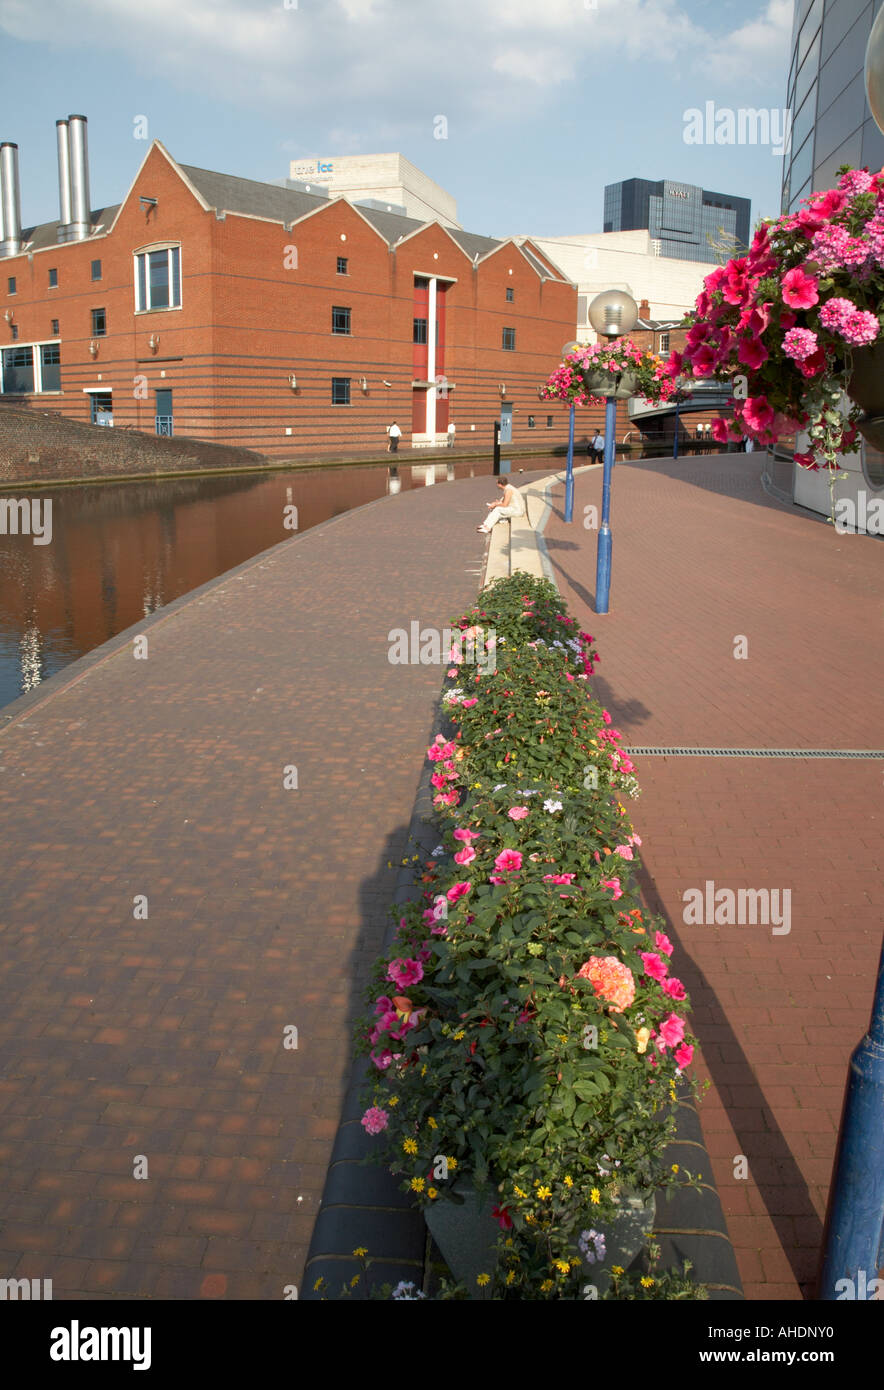 Birmingham city centre canals by the National Sea Life Centre West Midlands central England UK july 2006 - Stock Image